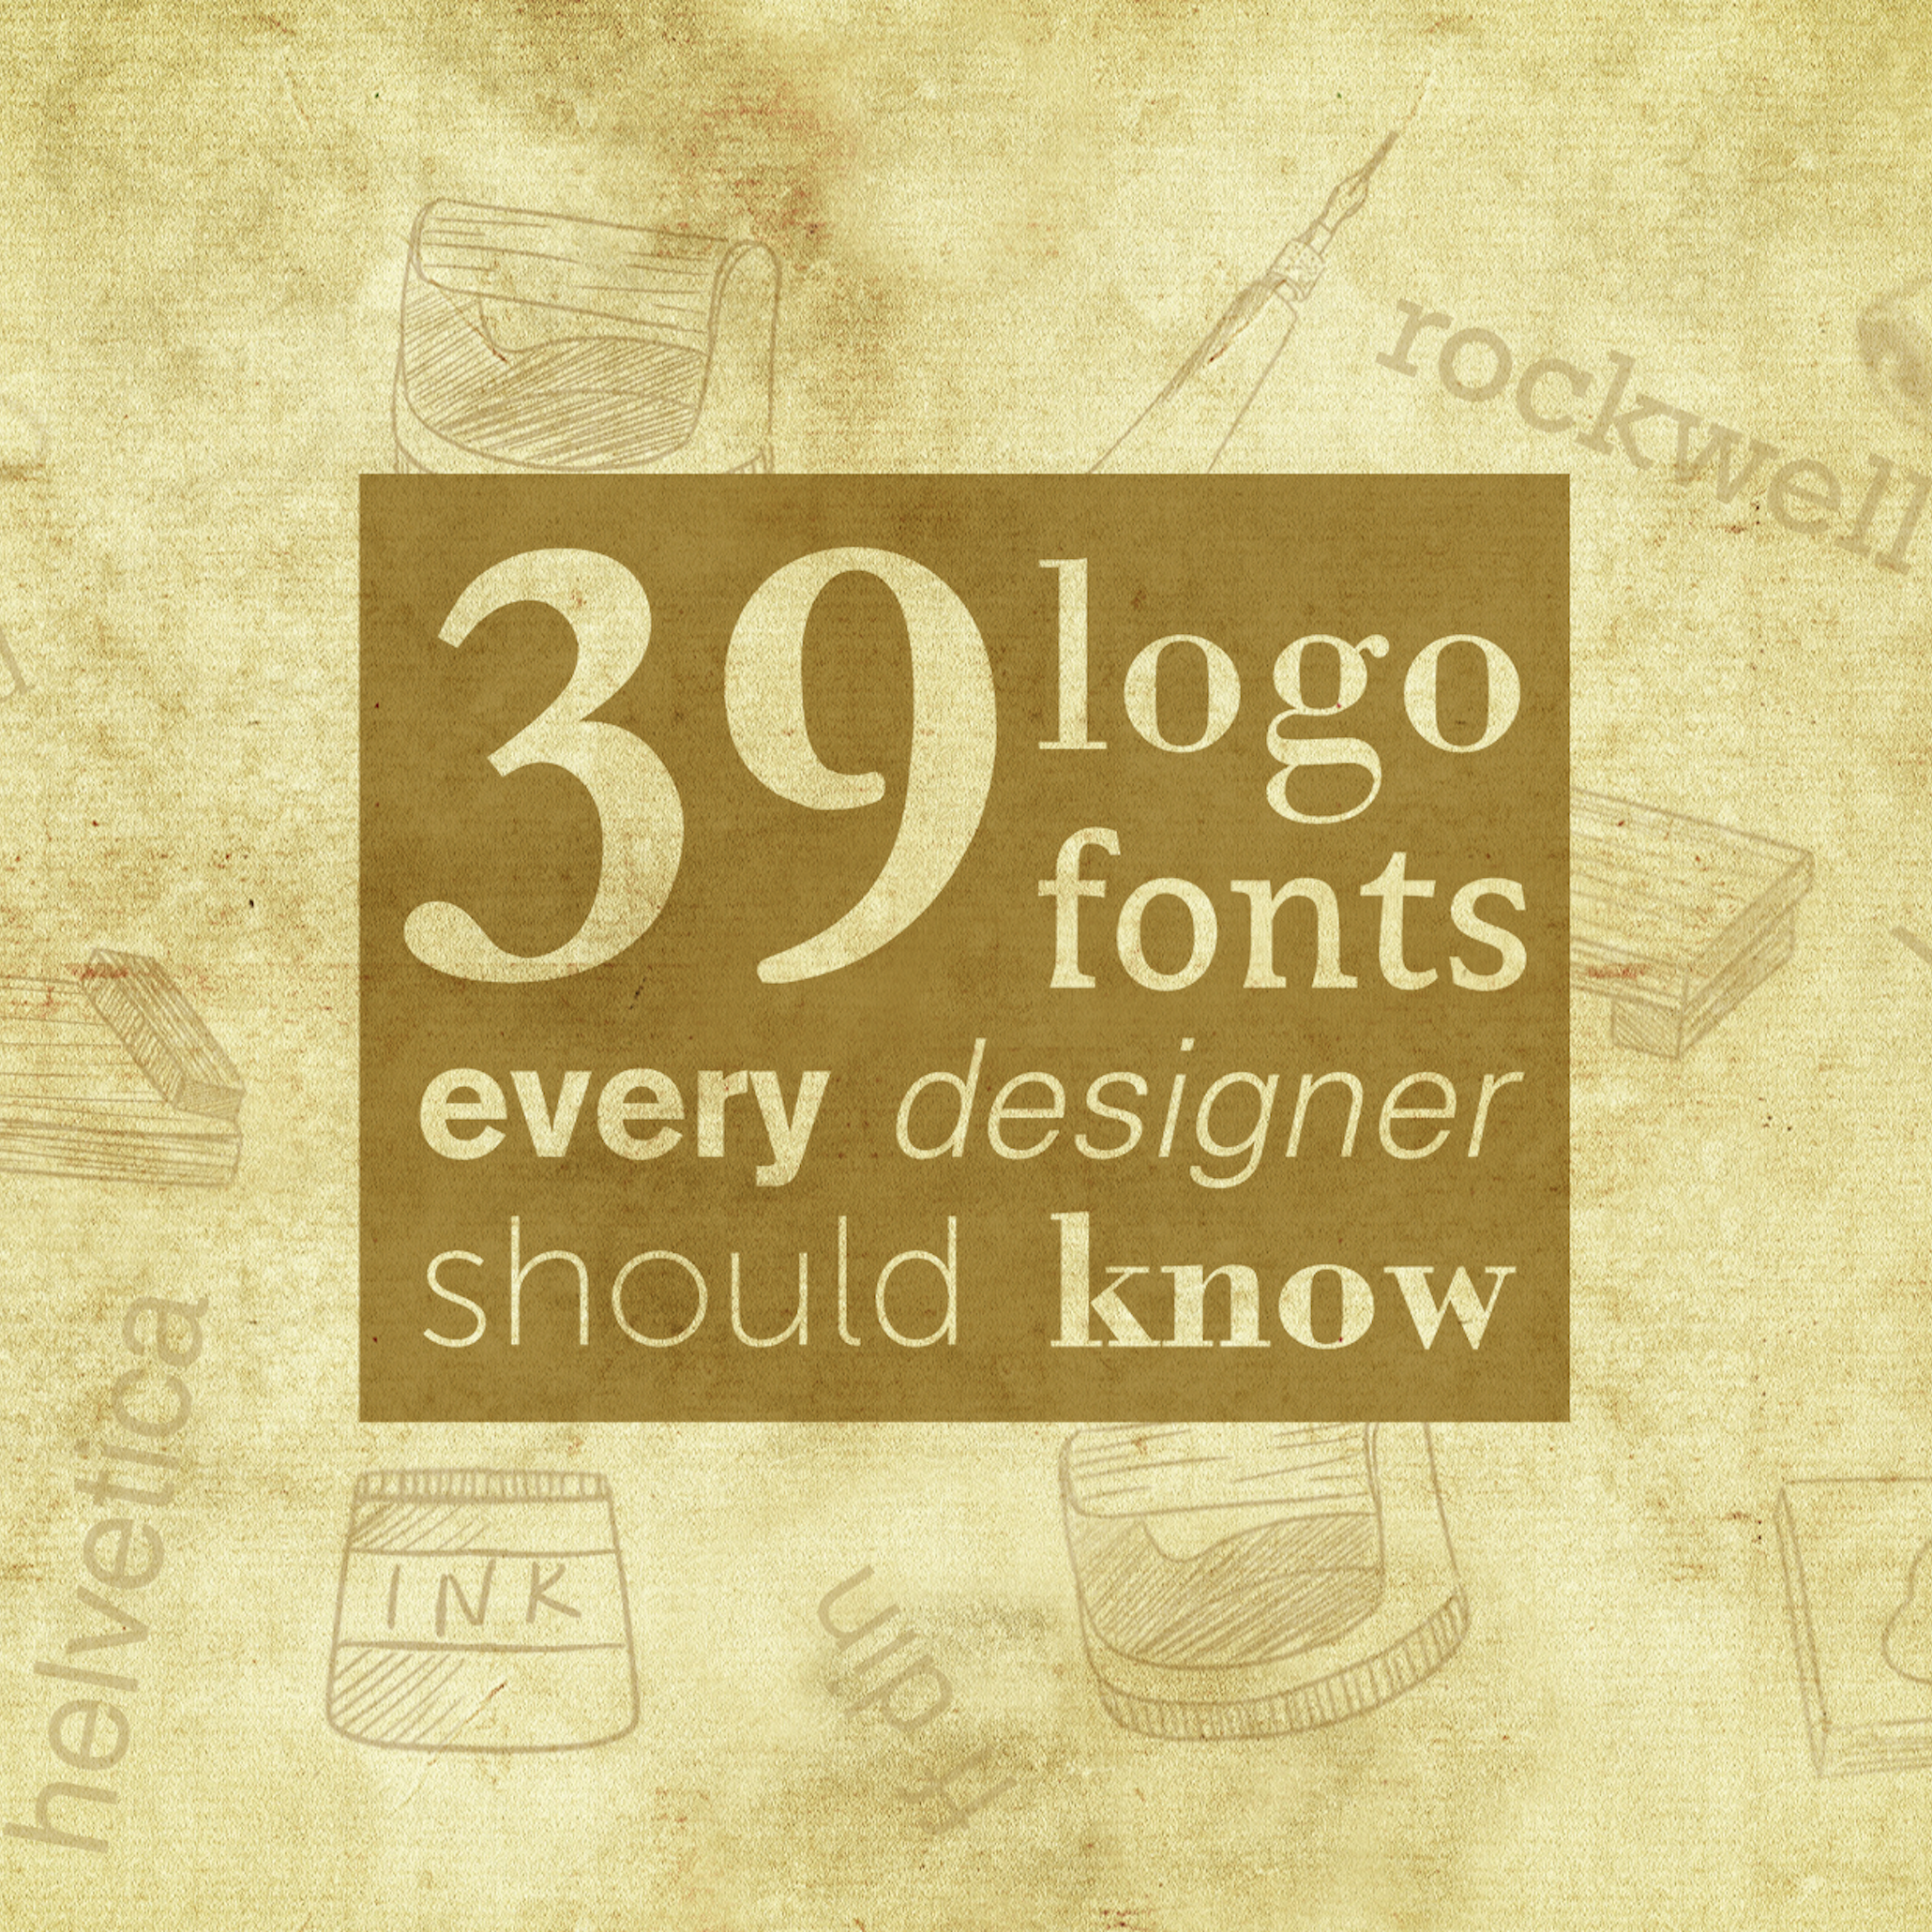 The 39 best logo fonts and how to pick the right one - 99designs